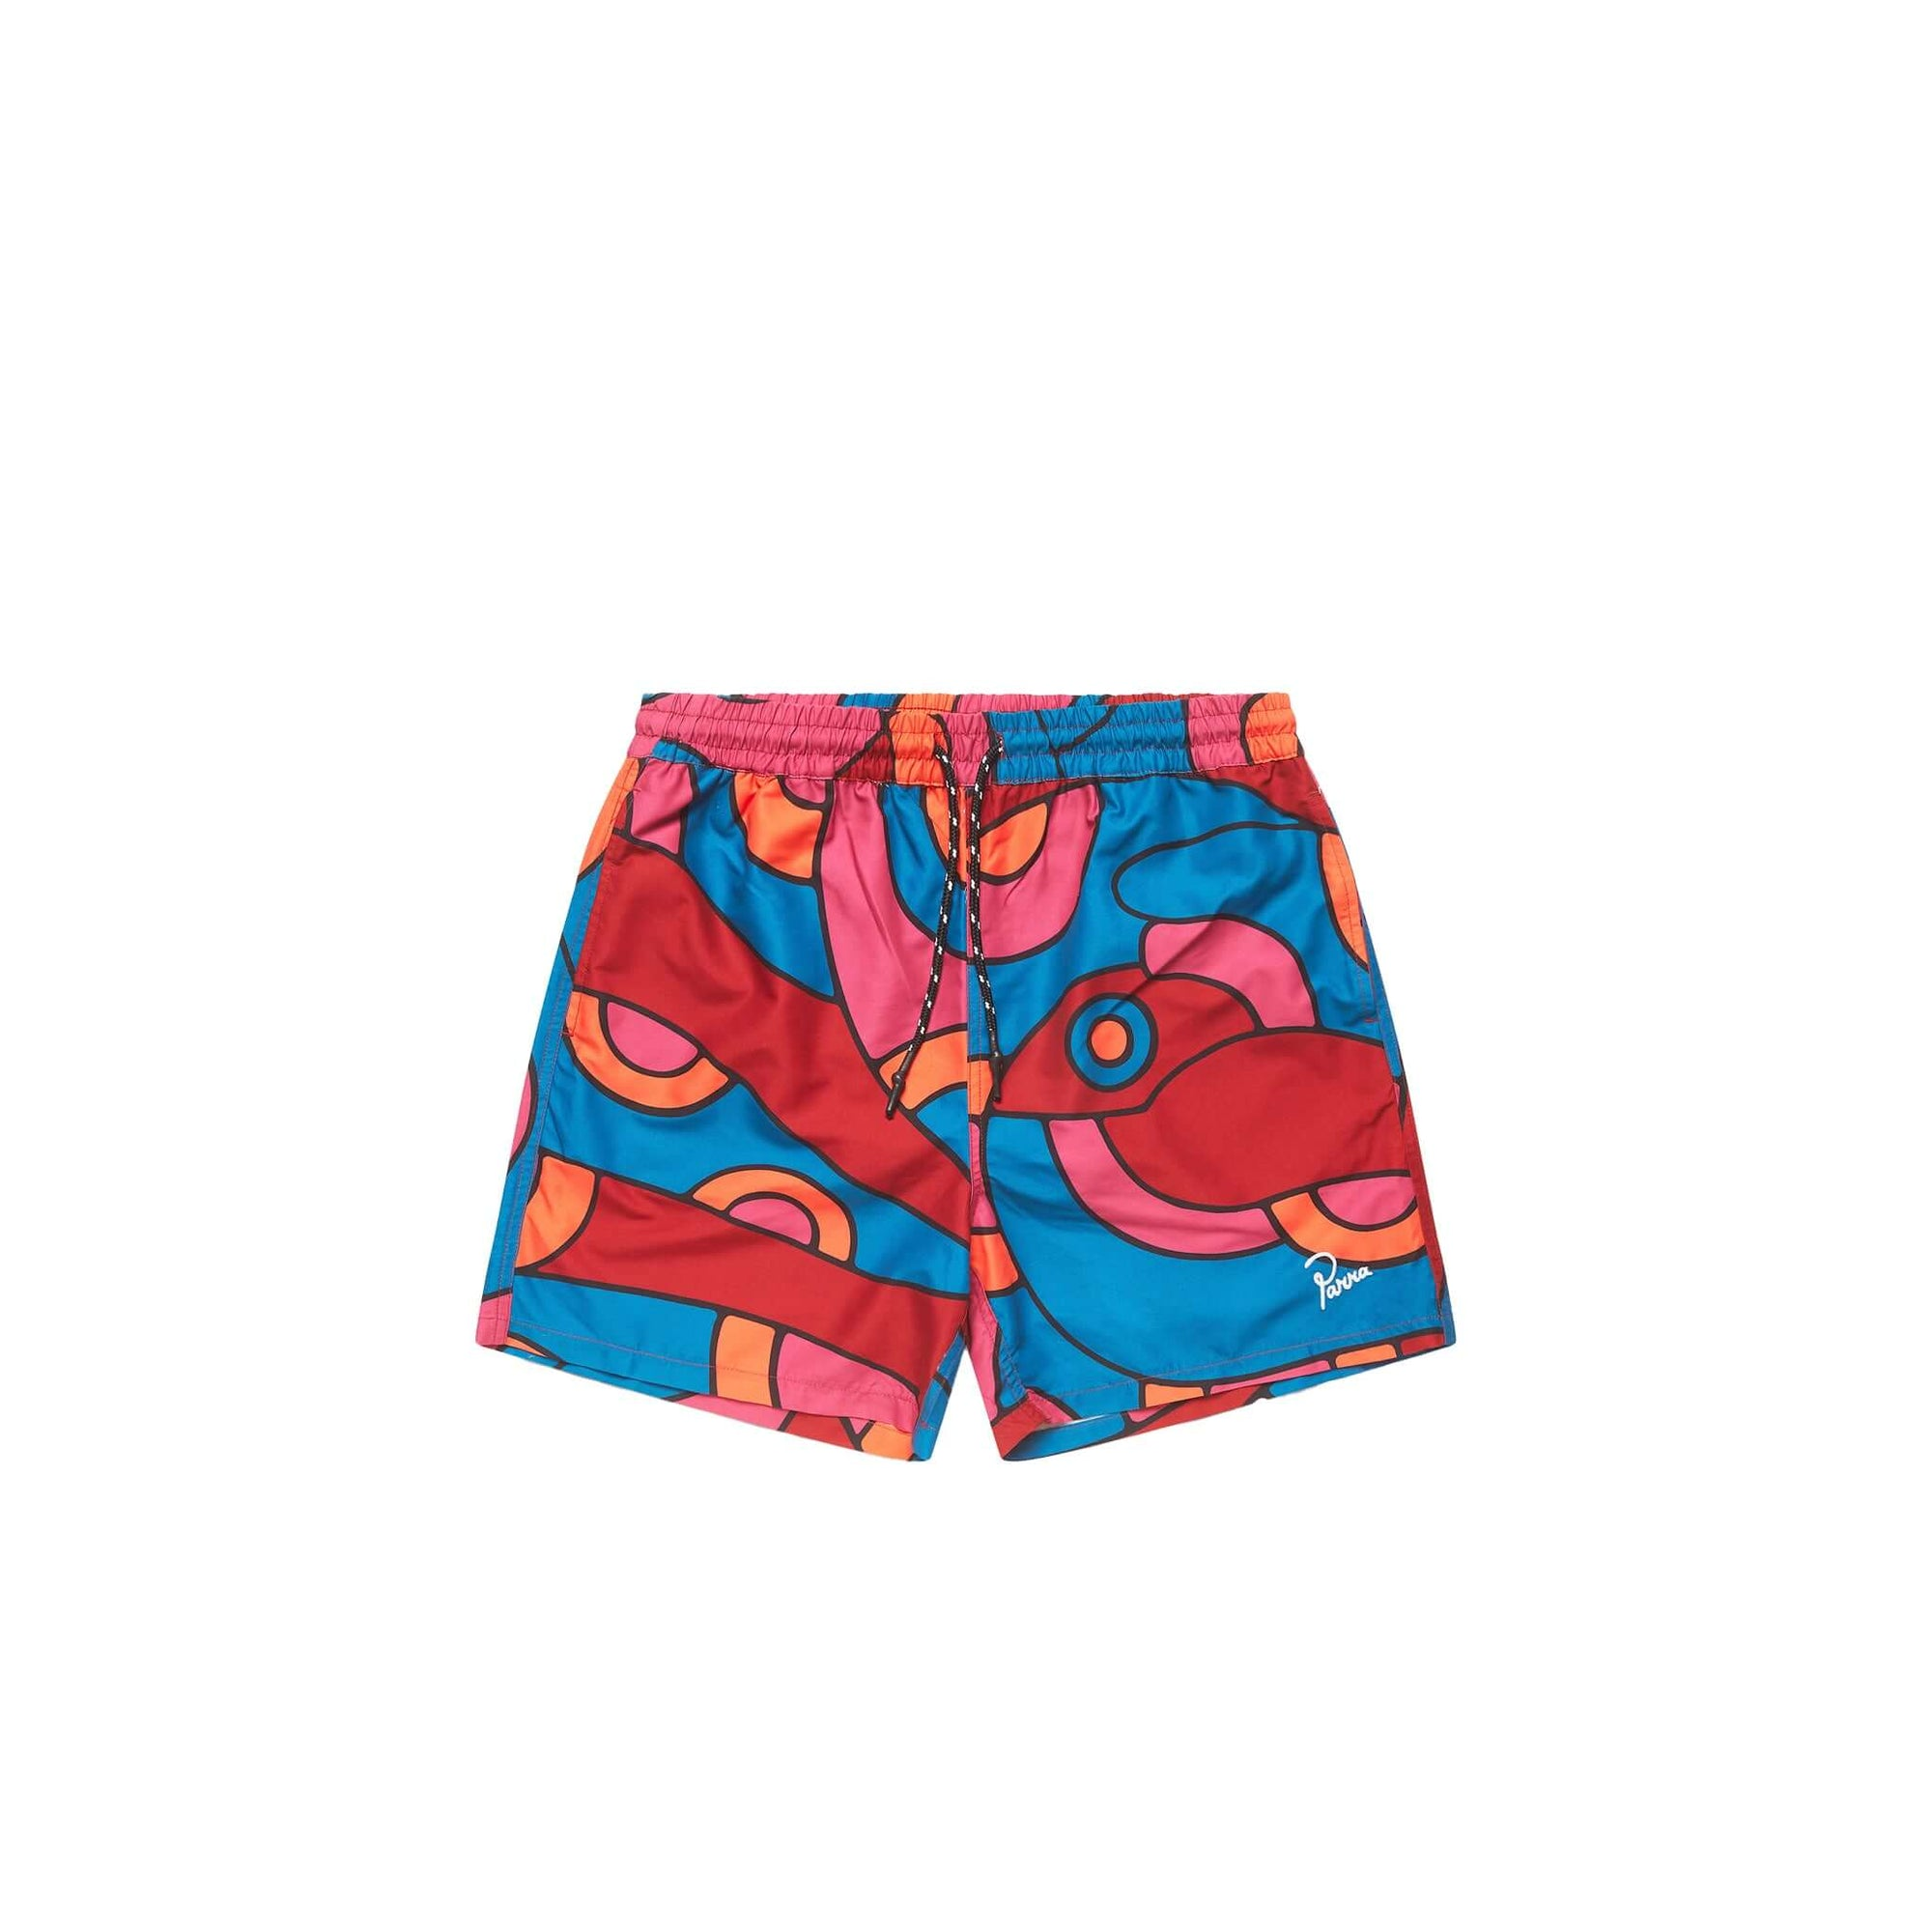 Parra Serpent Pattern Swimshorts: Multicolor - The Union Project